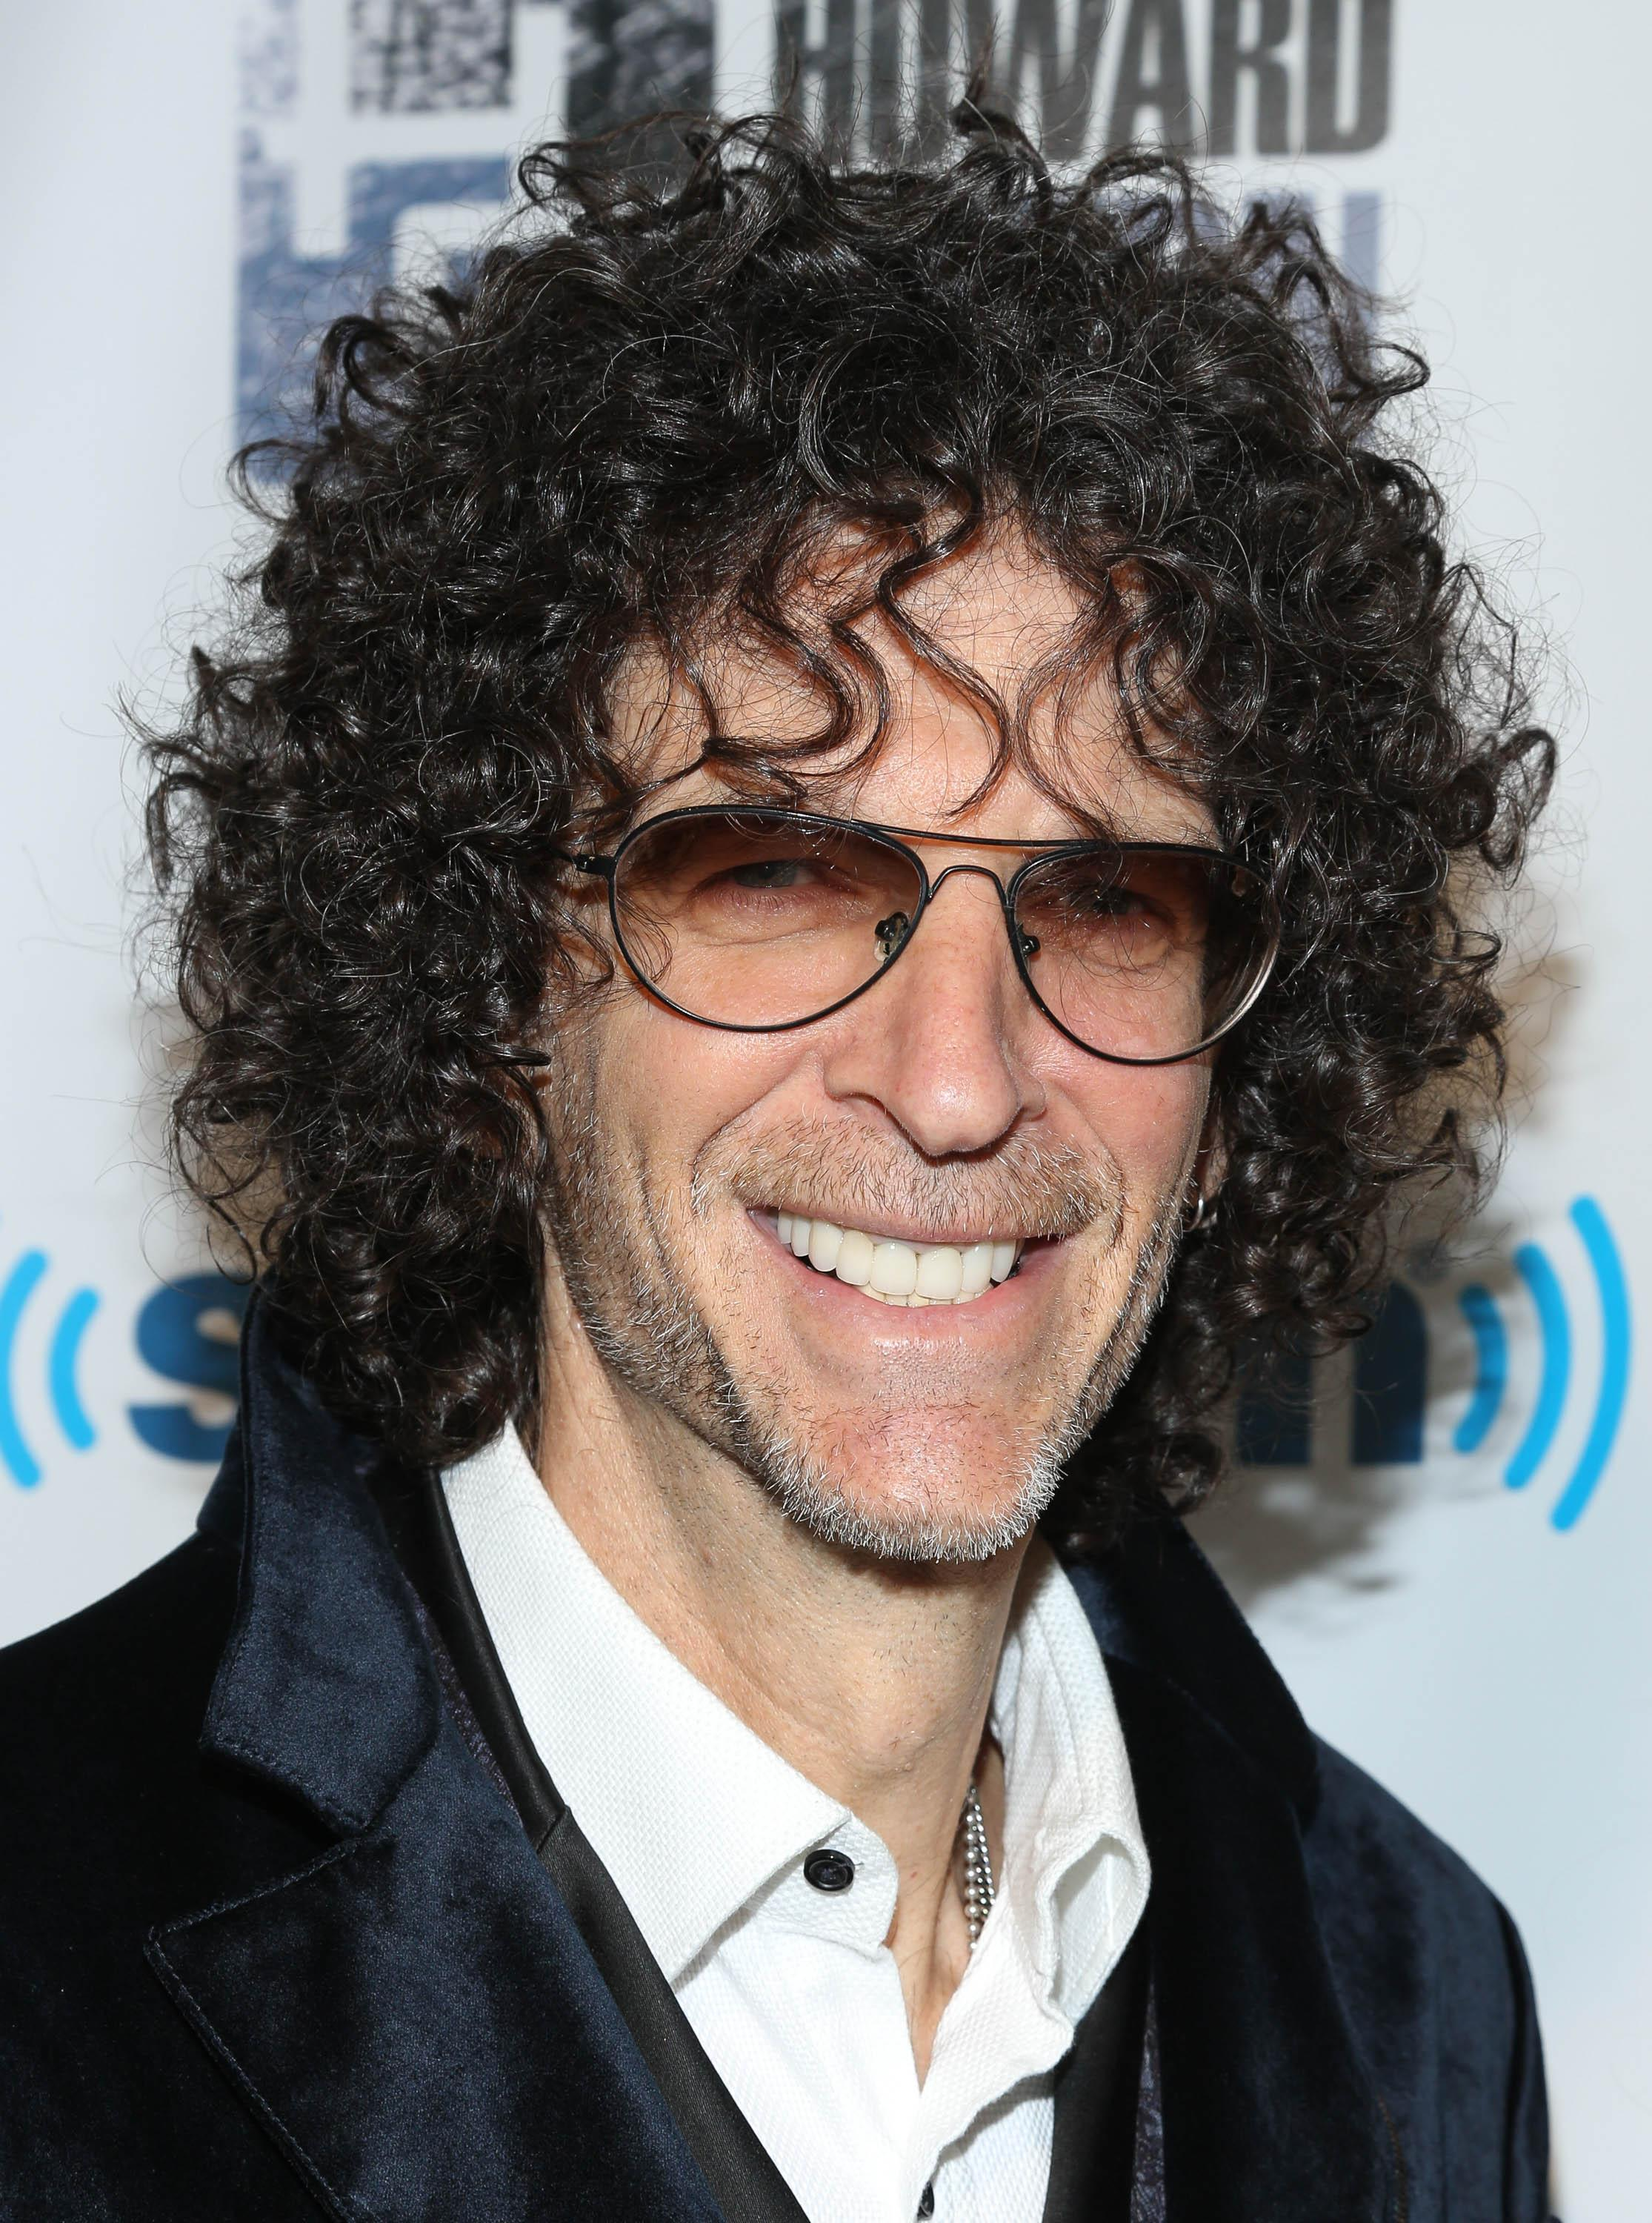 935118 Howard Stern Wallpapers